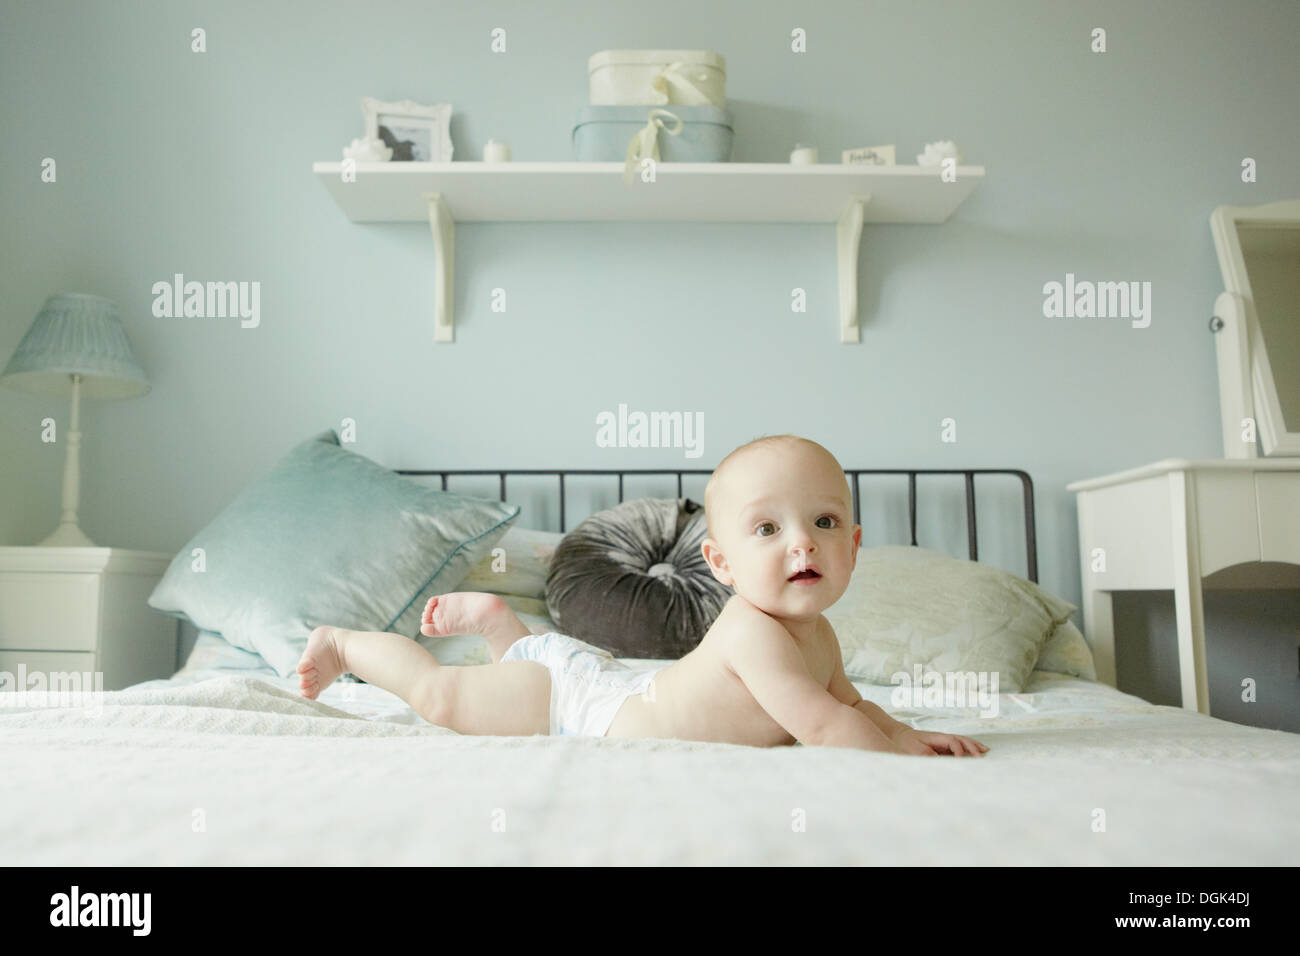 Baby boy lying on front on bed - Stock Image